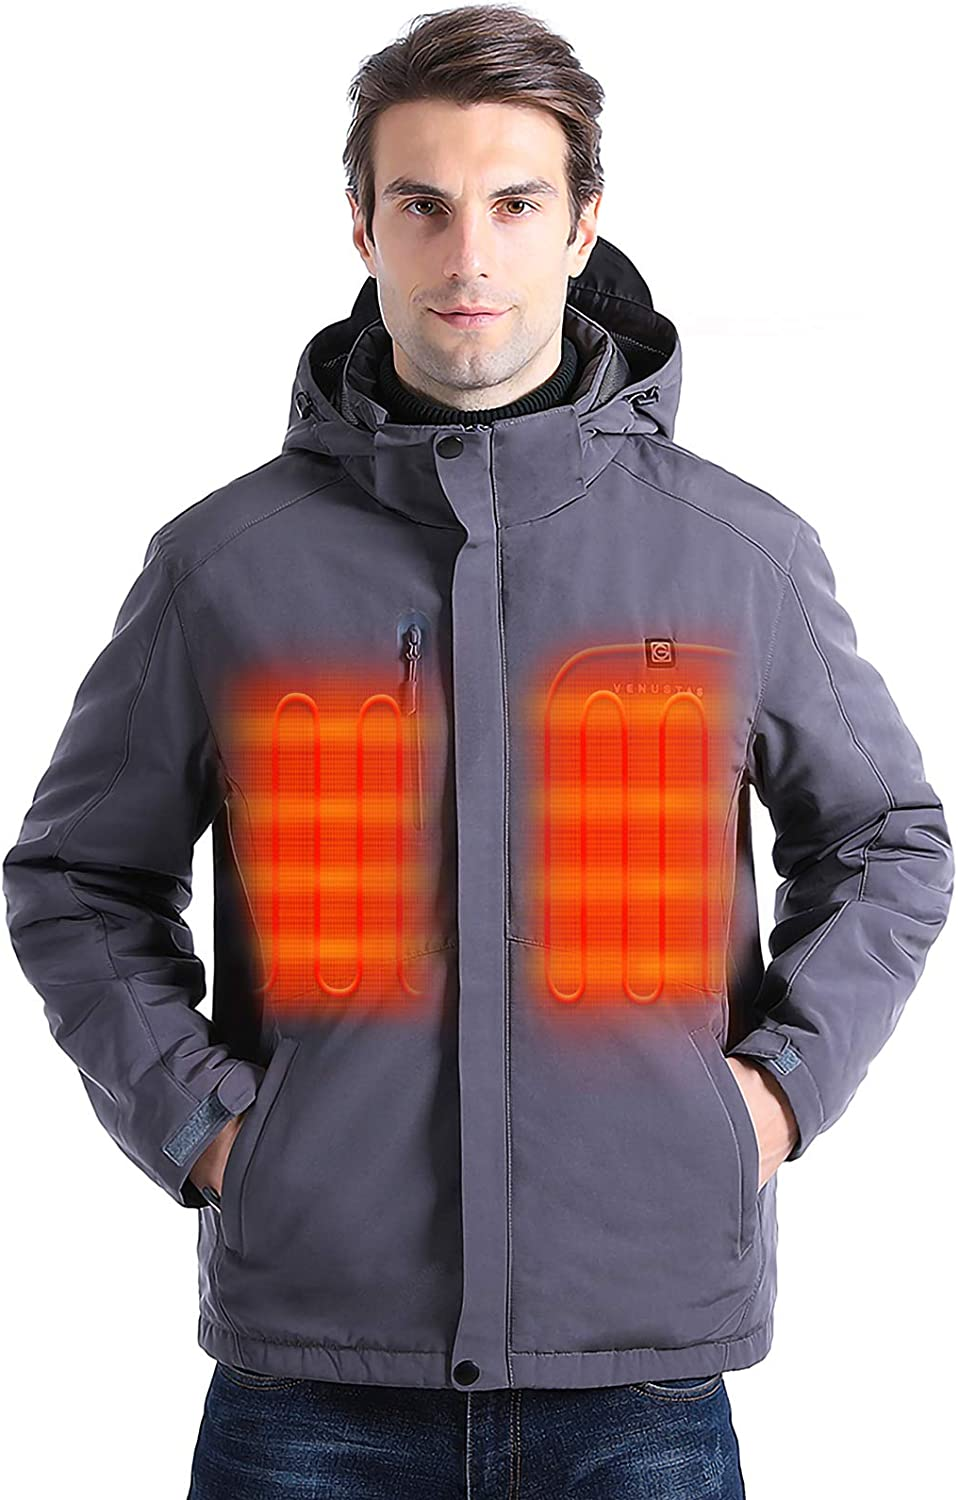 [2020 Upgrade] Men's Heated Jacket with Battery Pack 5V, Heated Coat with Detachable Hood and Waterproof& Windproof